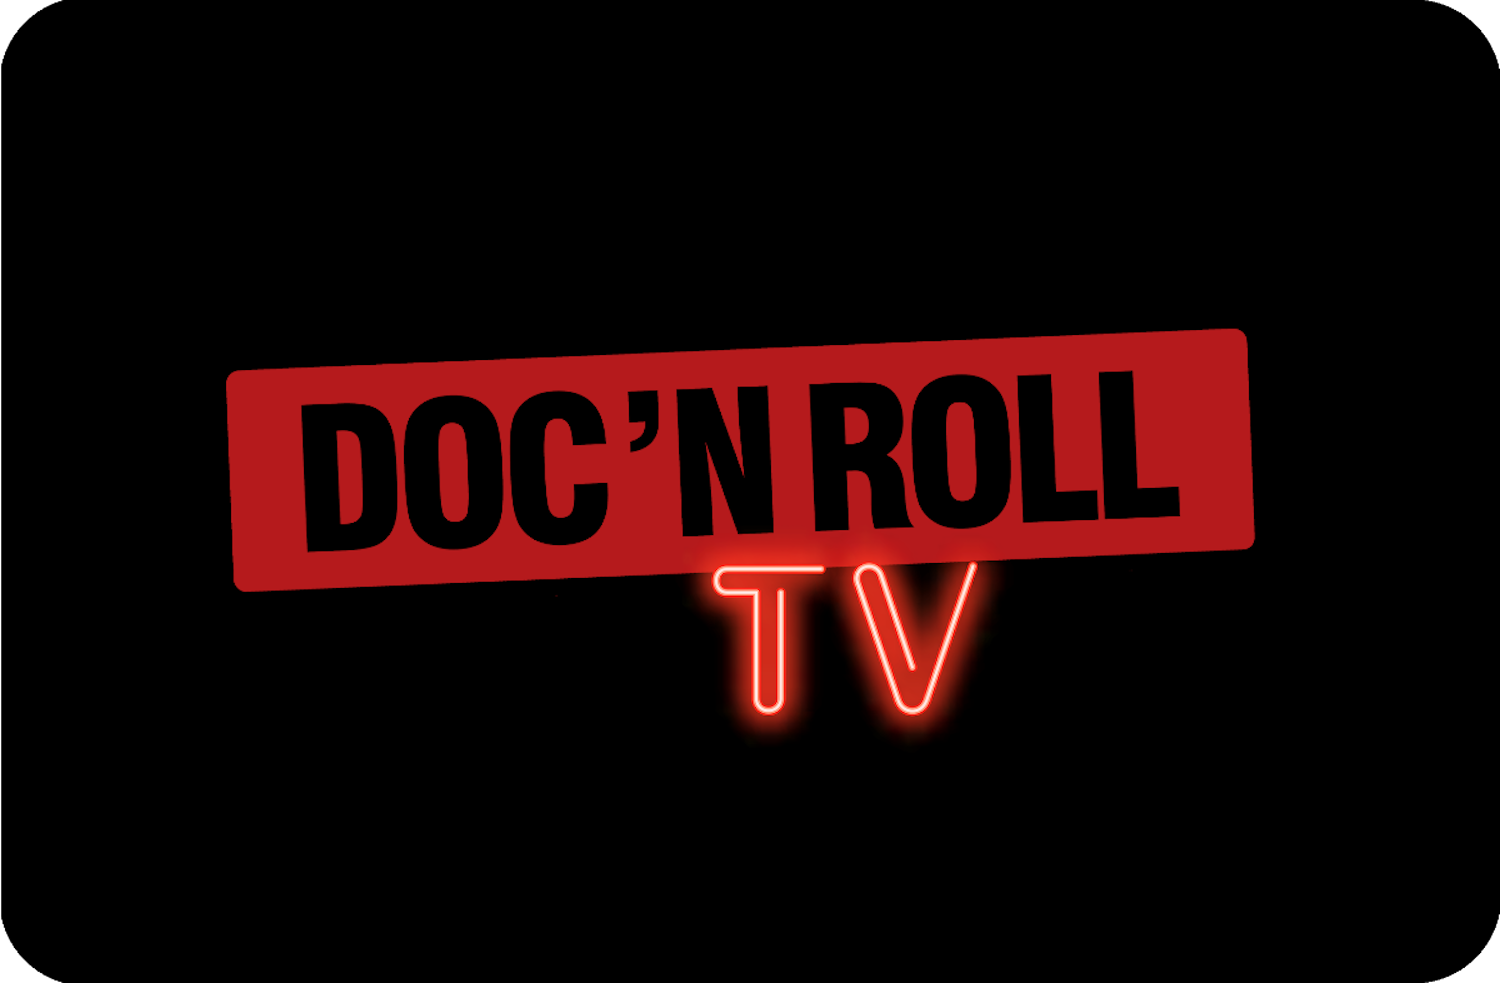 Introducing Doc'n Roll TV: the streaming site for music documentaries